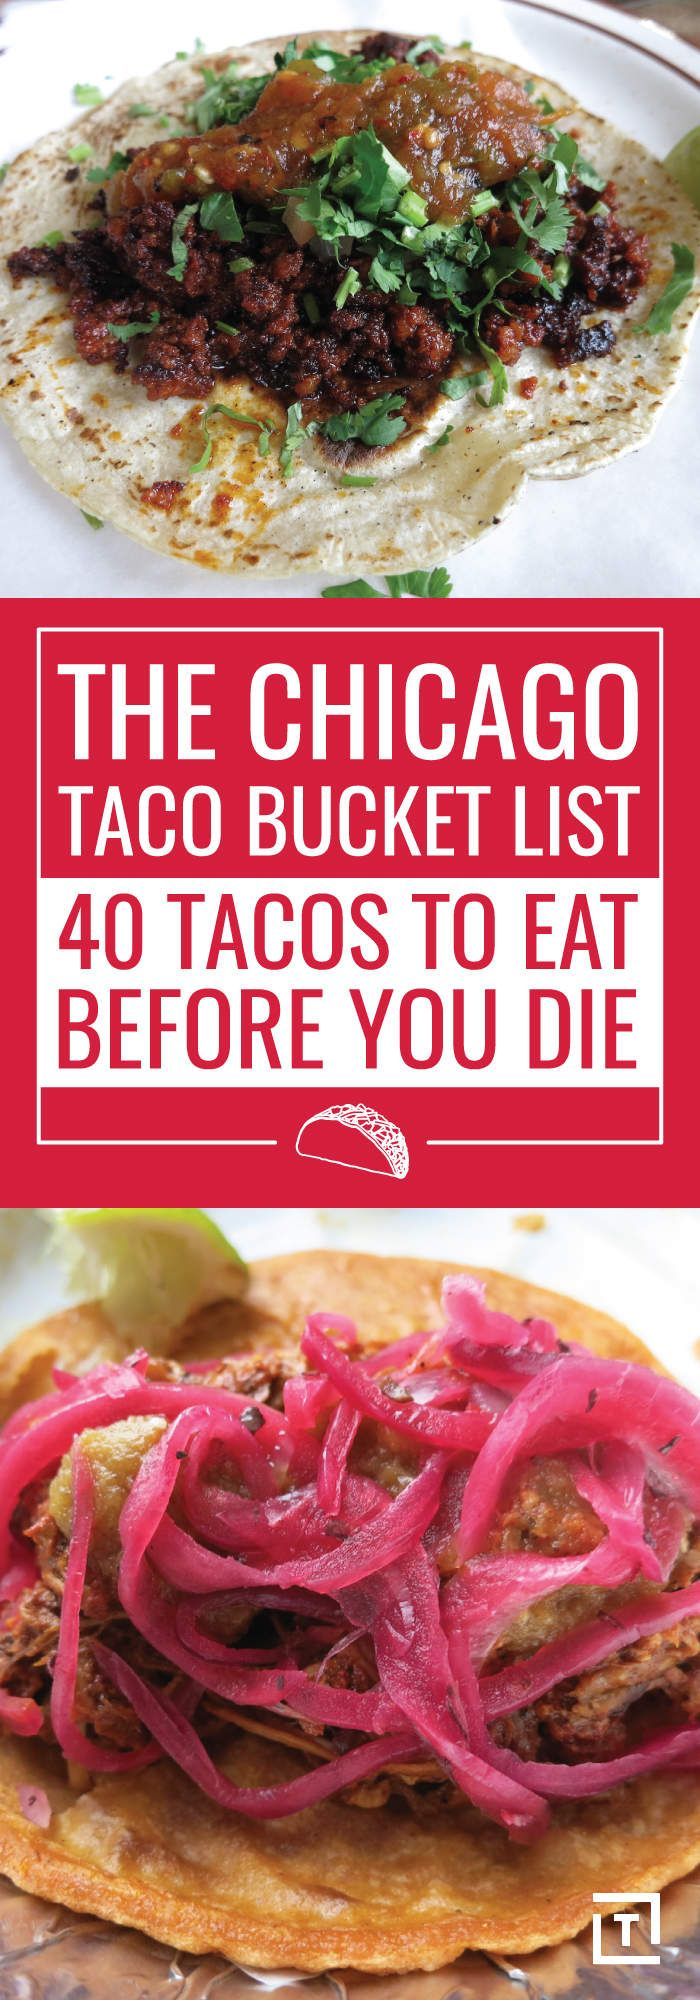 best 25+ chicago restaurants ideas on pinterest | chicago, chicago